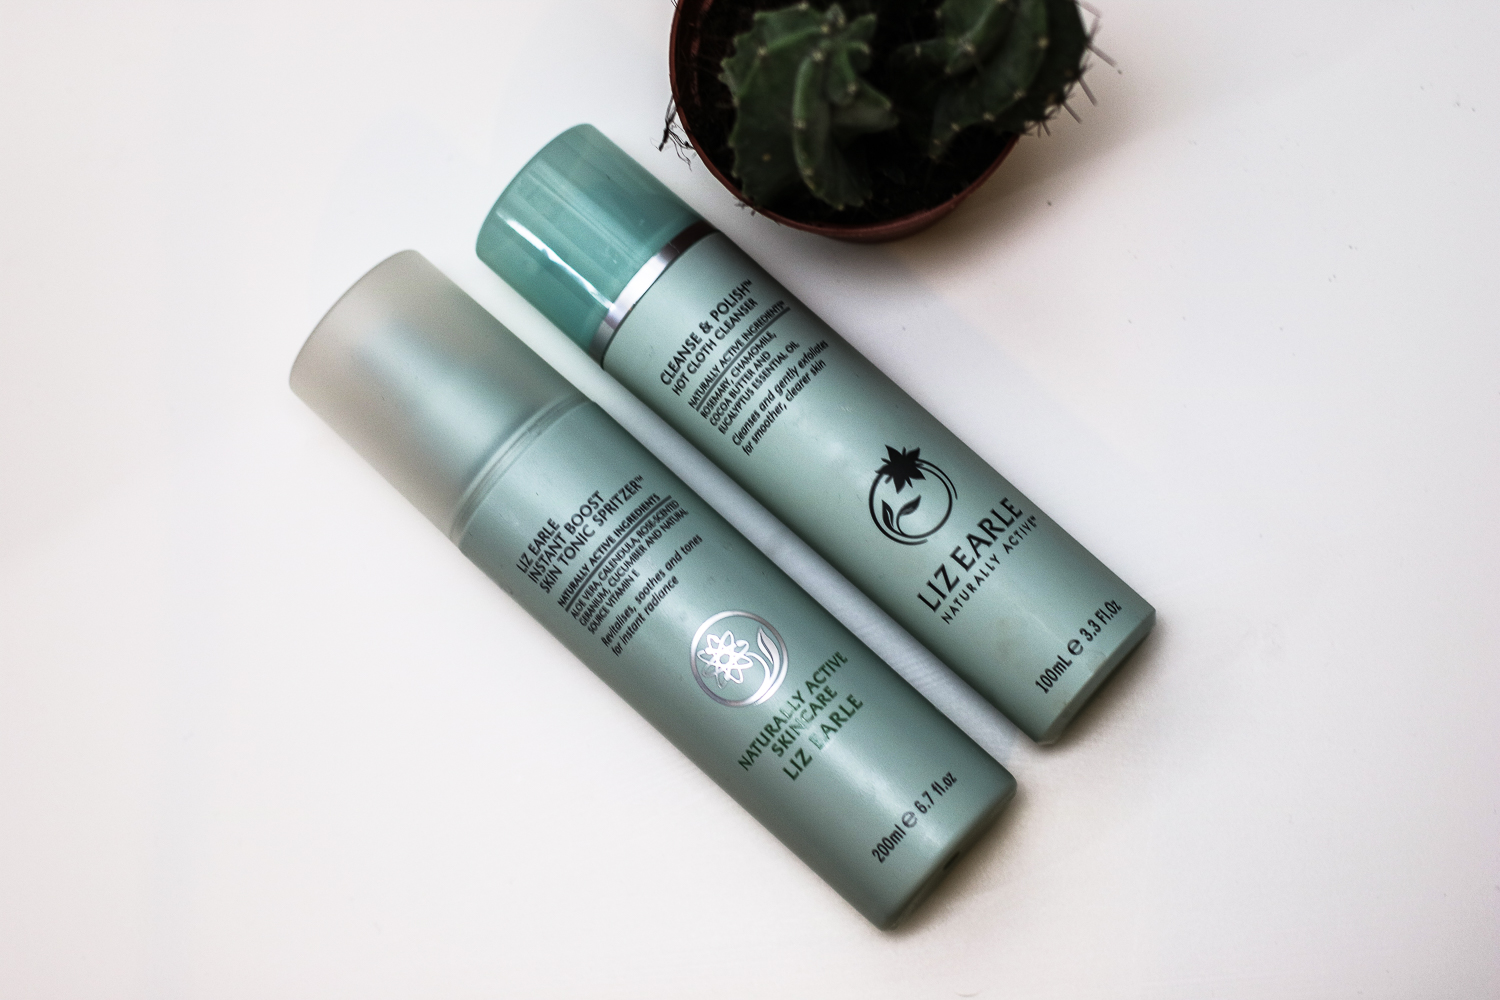 Liz Earle Naturally Active Skincare Review